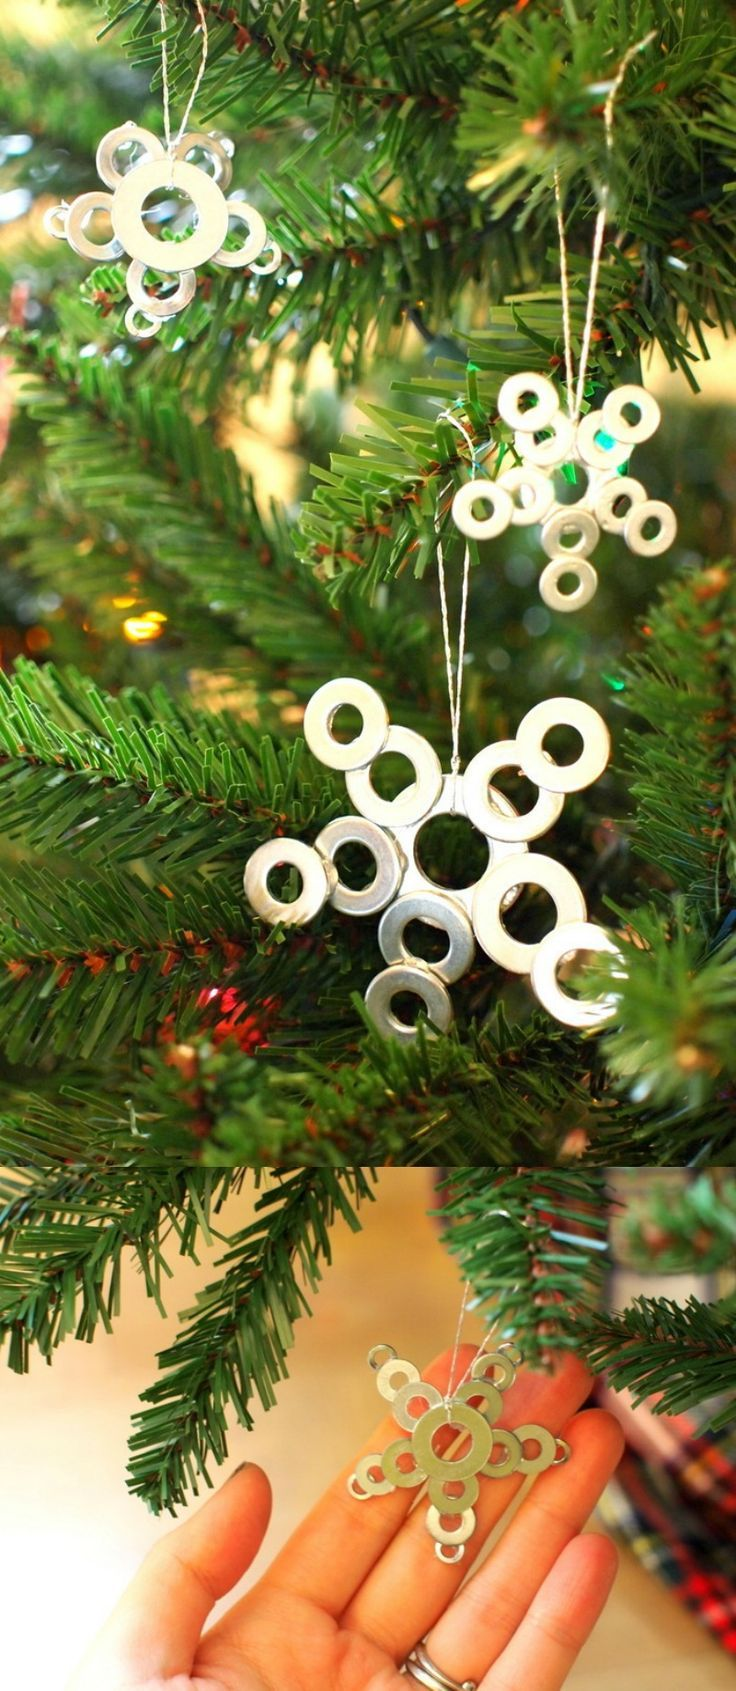 DIY Star Ornaments Made From Washers | Diy christmas star ...